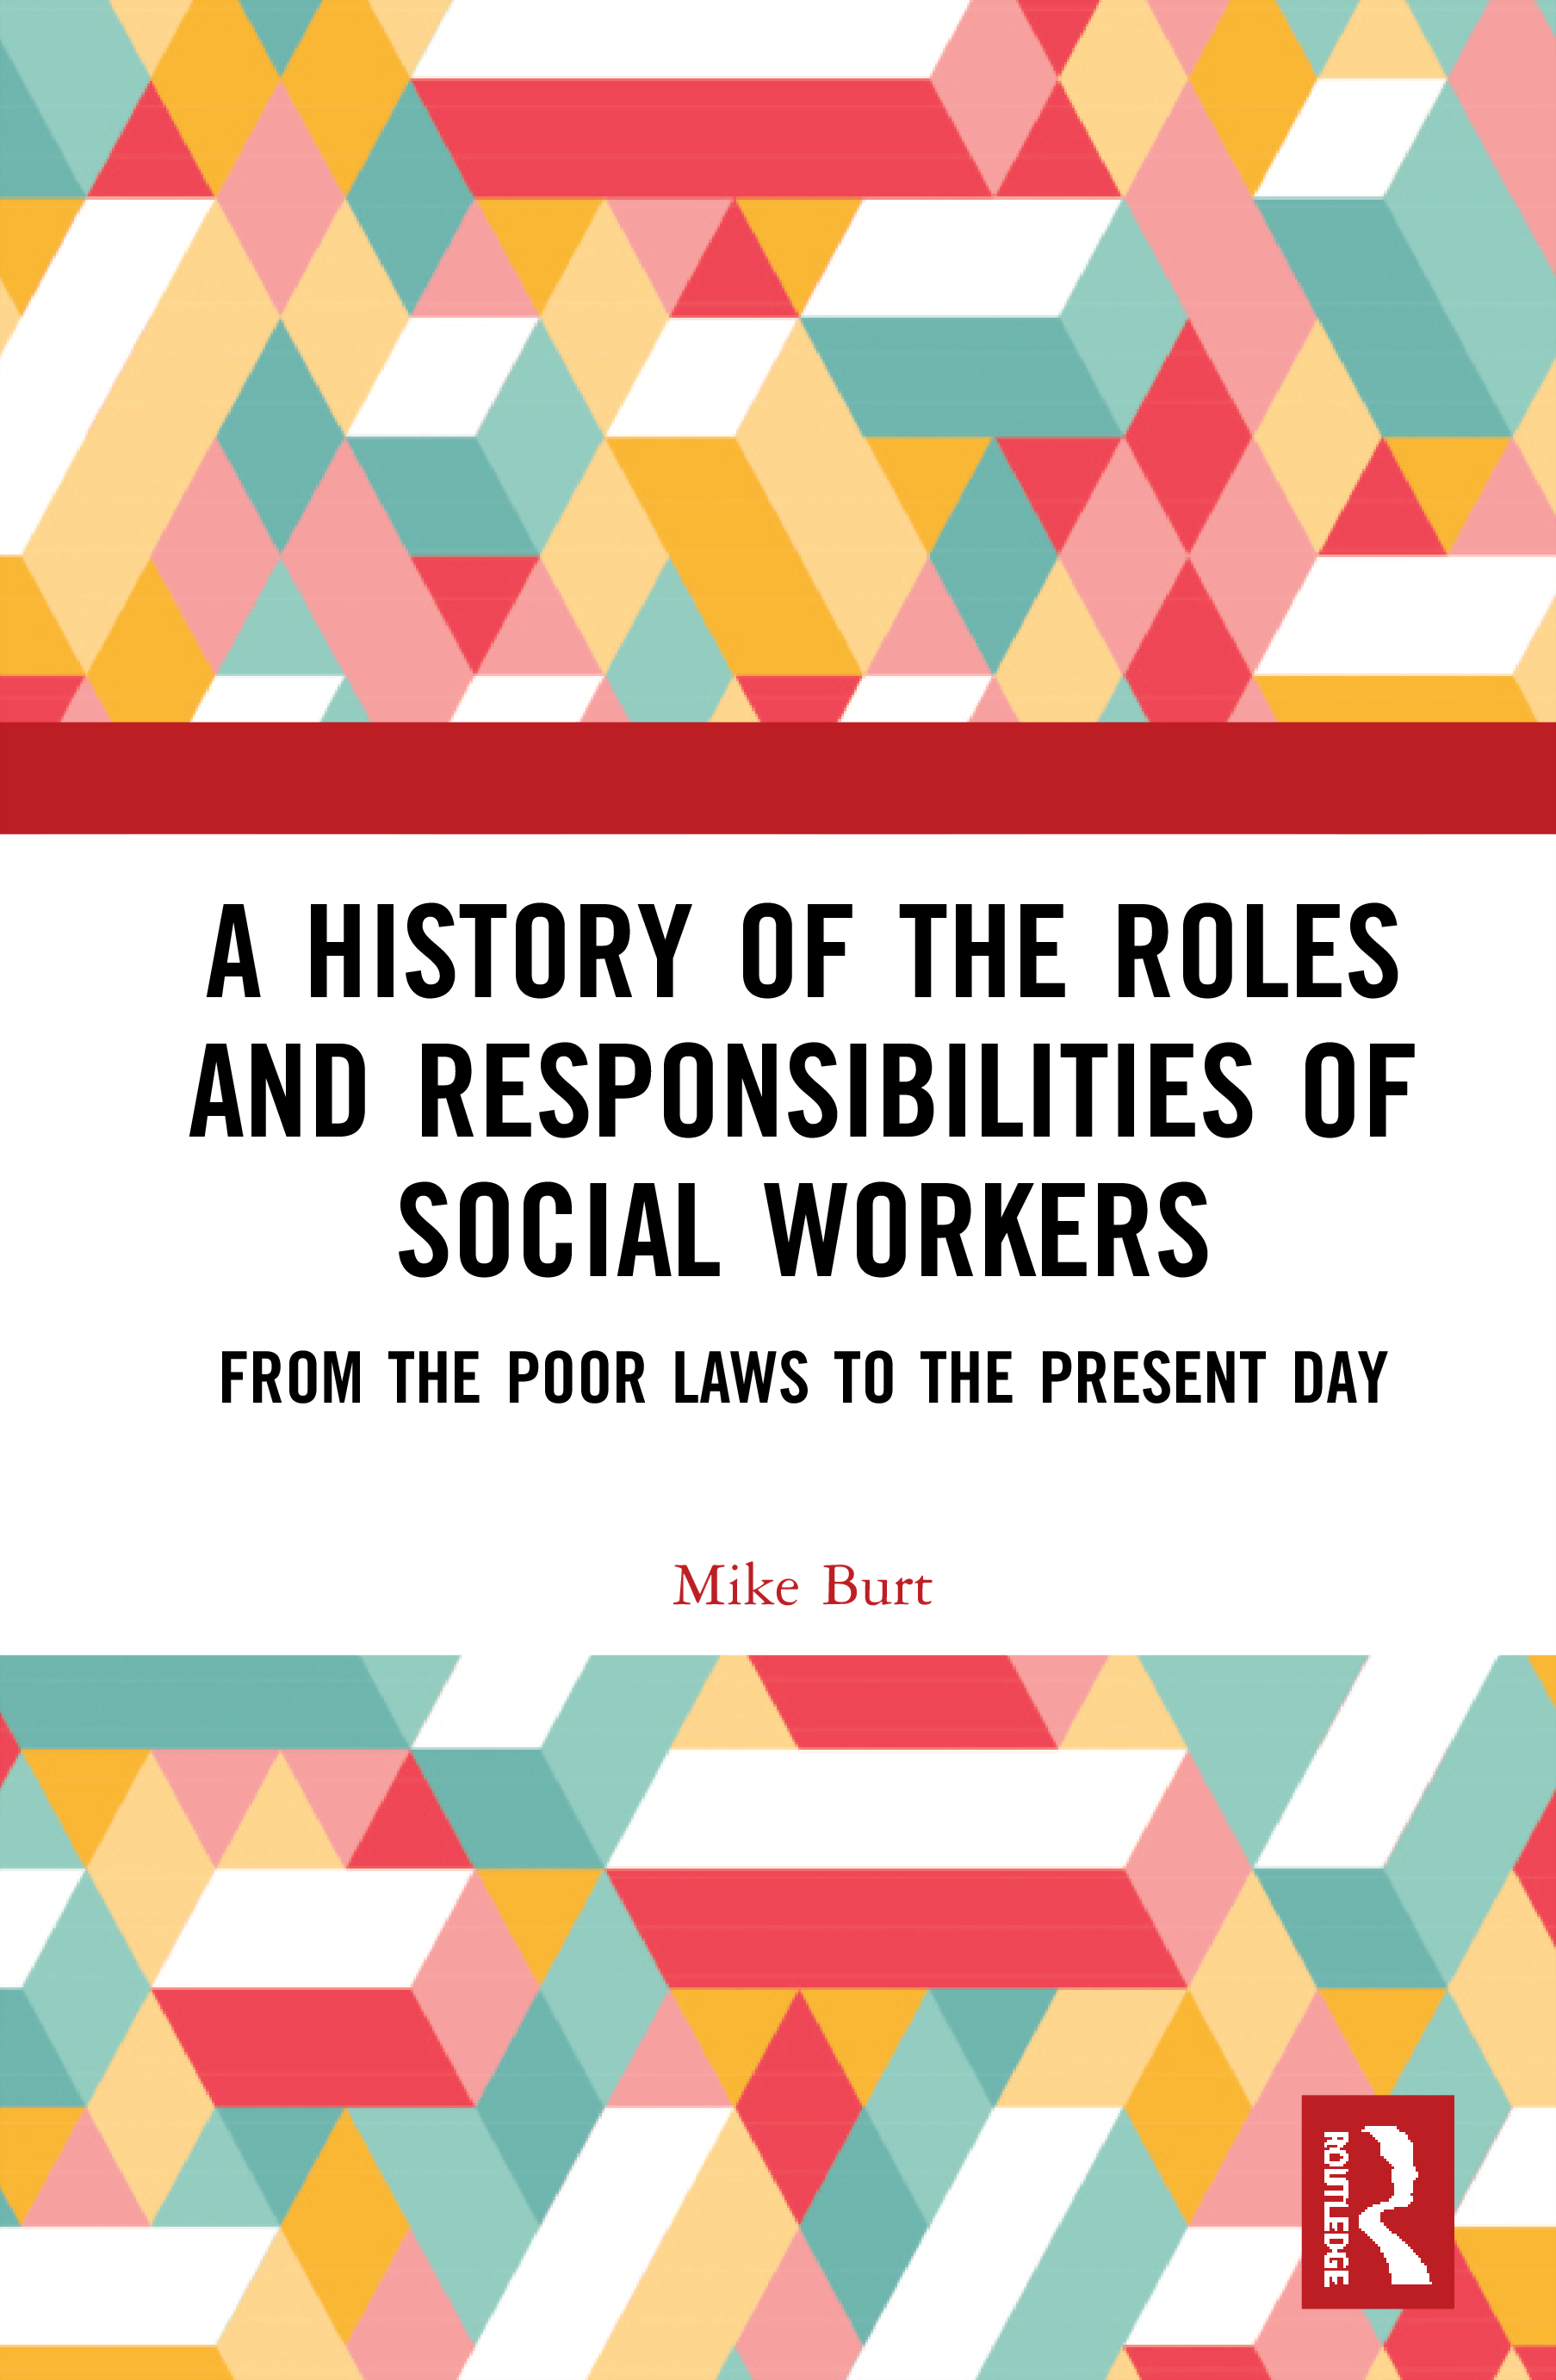 A History of the Roles and Responsibilities of Social Workers: From the Poor Laws to the Present Day book cover